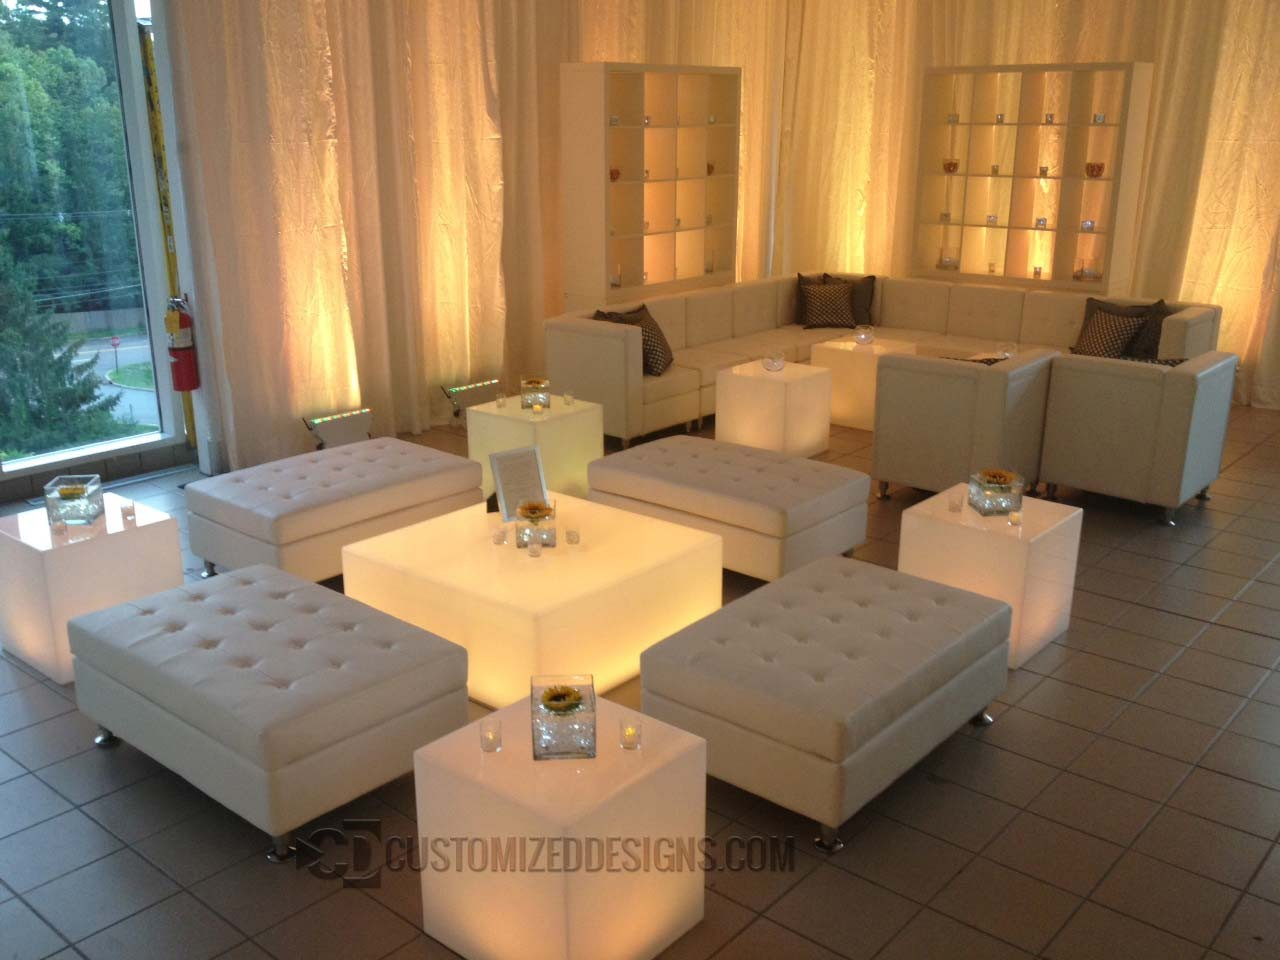 LED Lighted Coffee Table For Nightclubs Lounges Or Home Bars